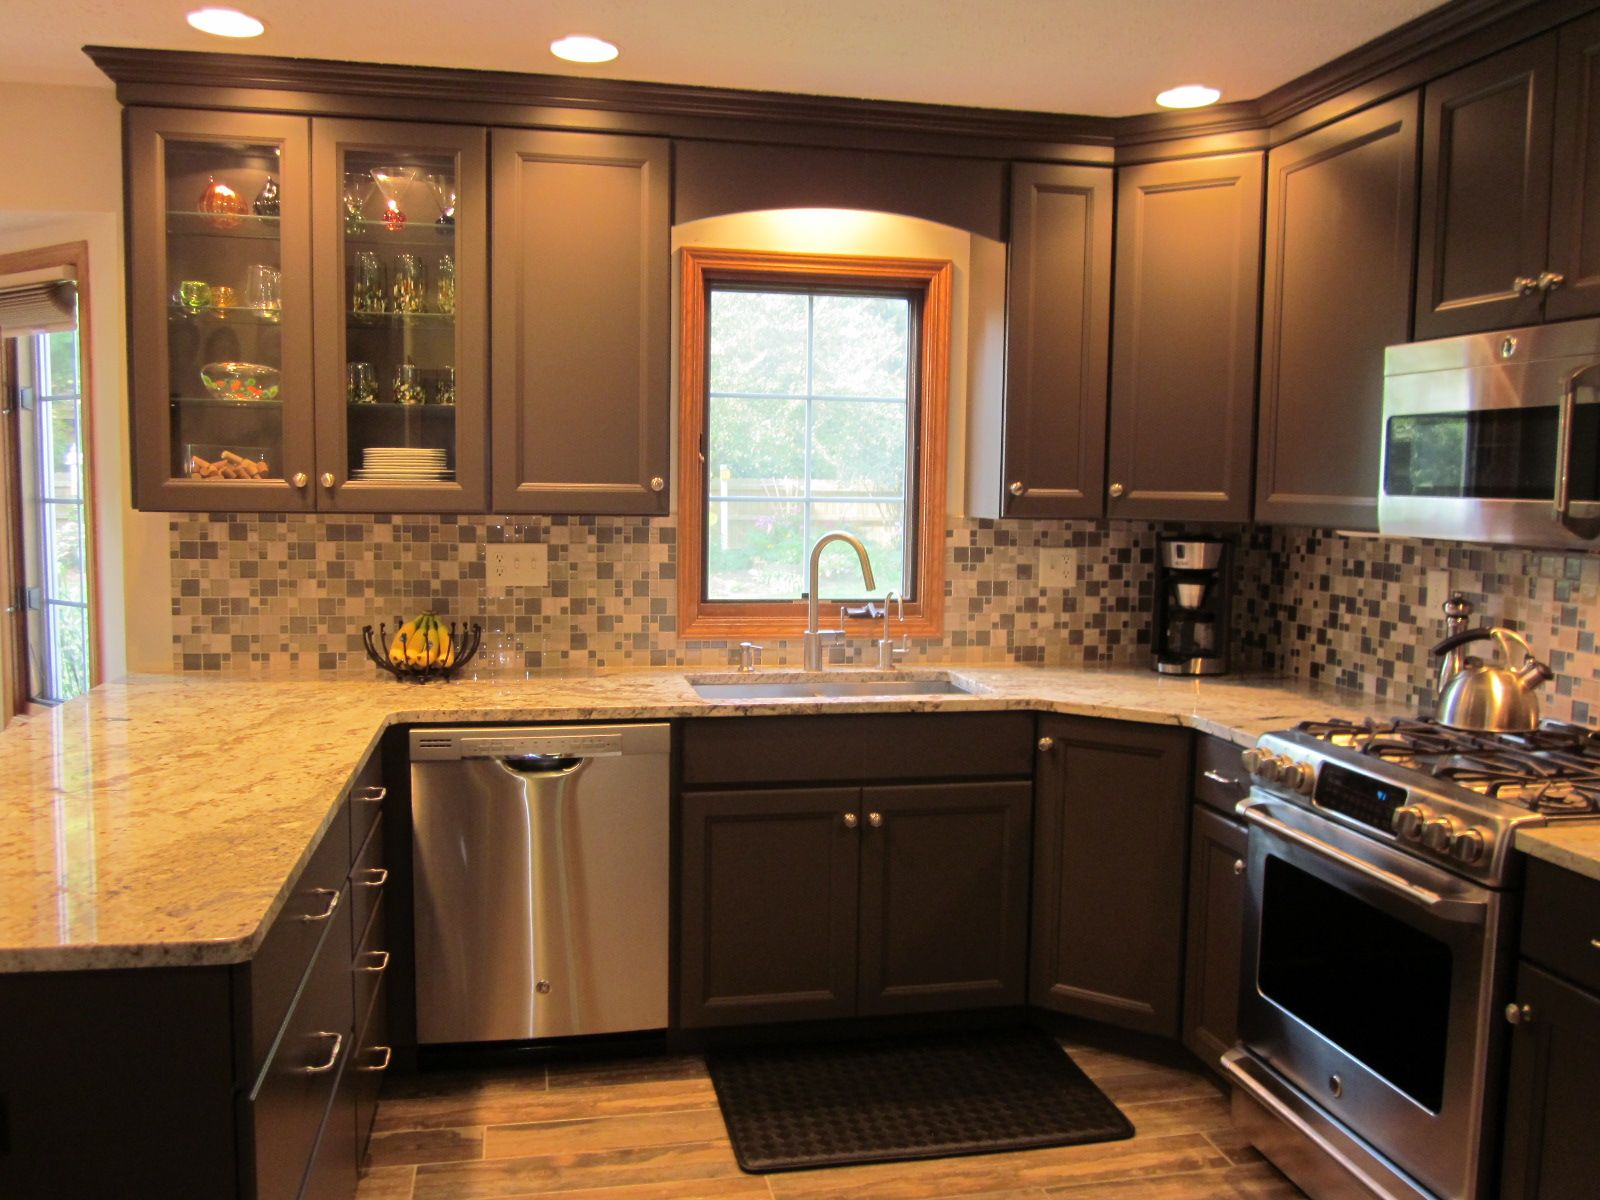 Cabinets Near Peninsula Google Search Kitchen Cabinet Inspiration Wood Valance Diy Kitchen Cabinets